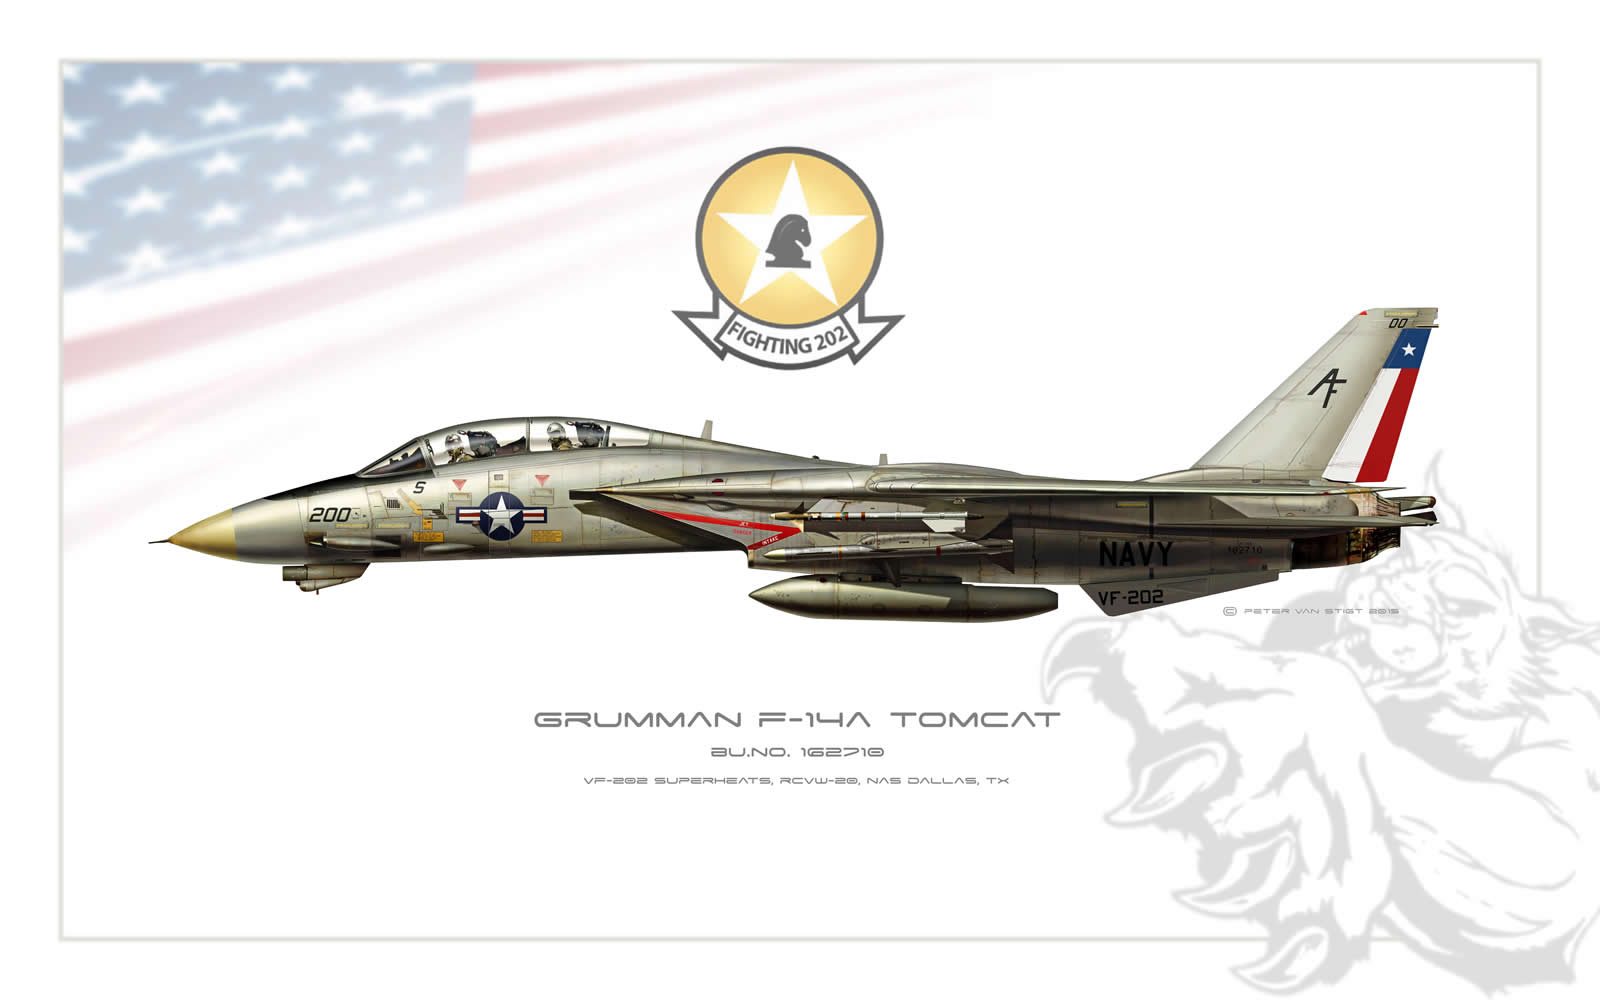 VF-202 Superheats F-14 Tomcat Profile